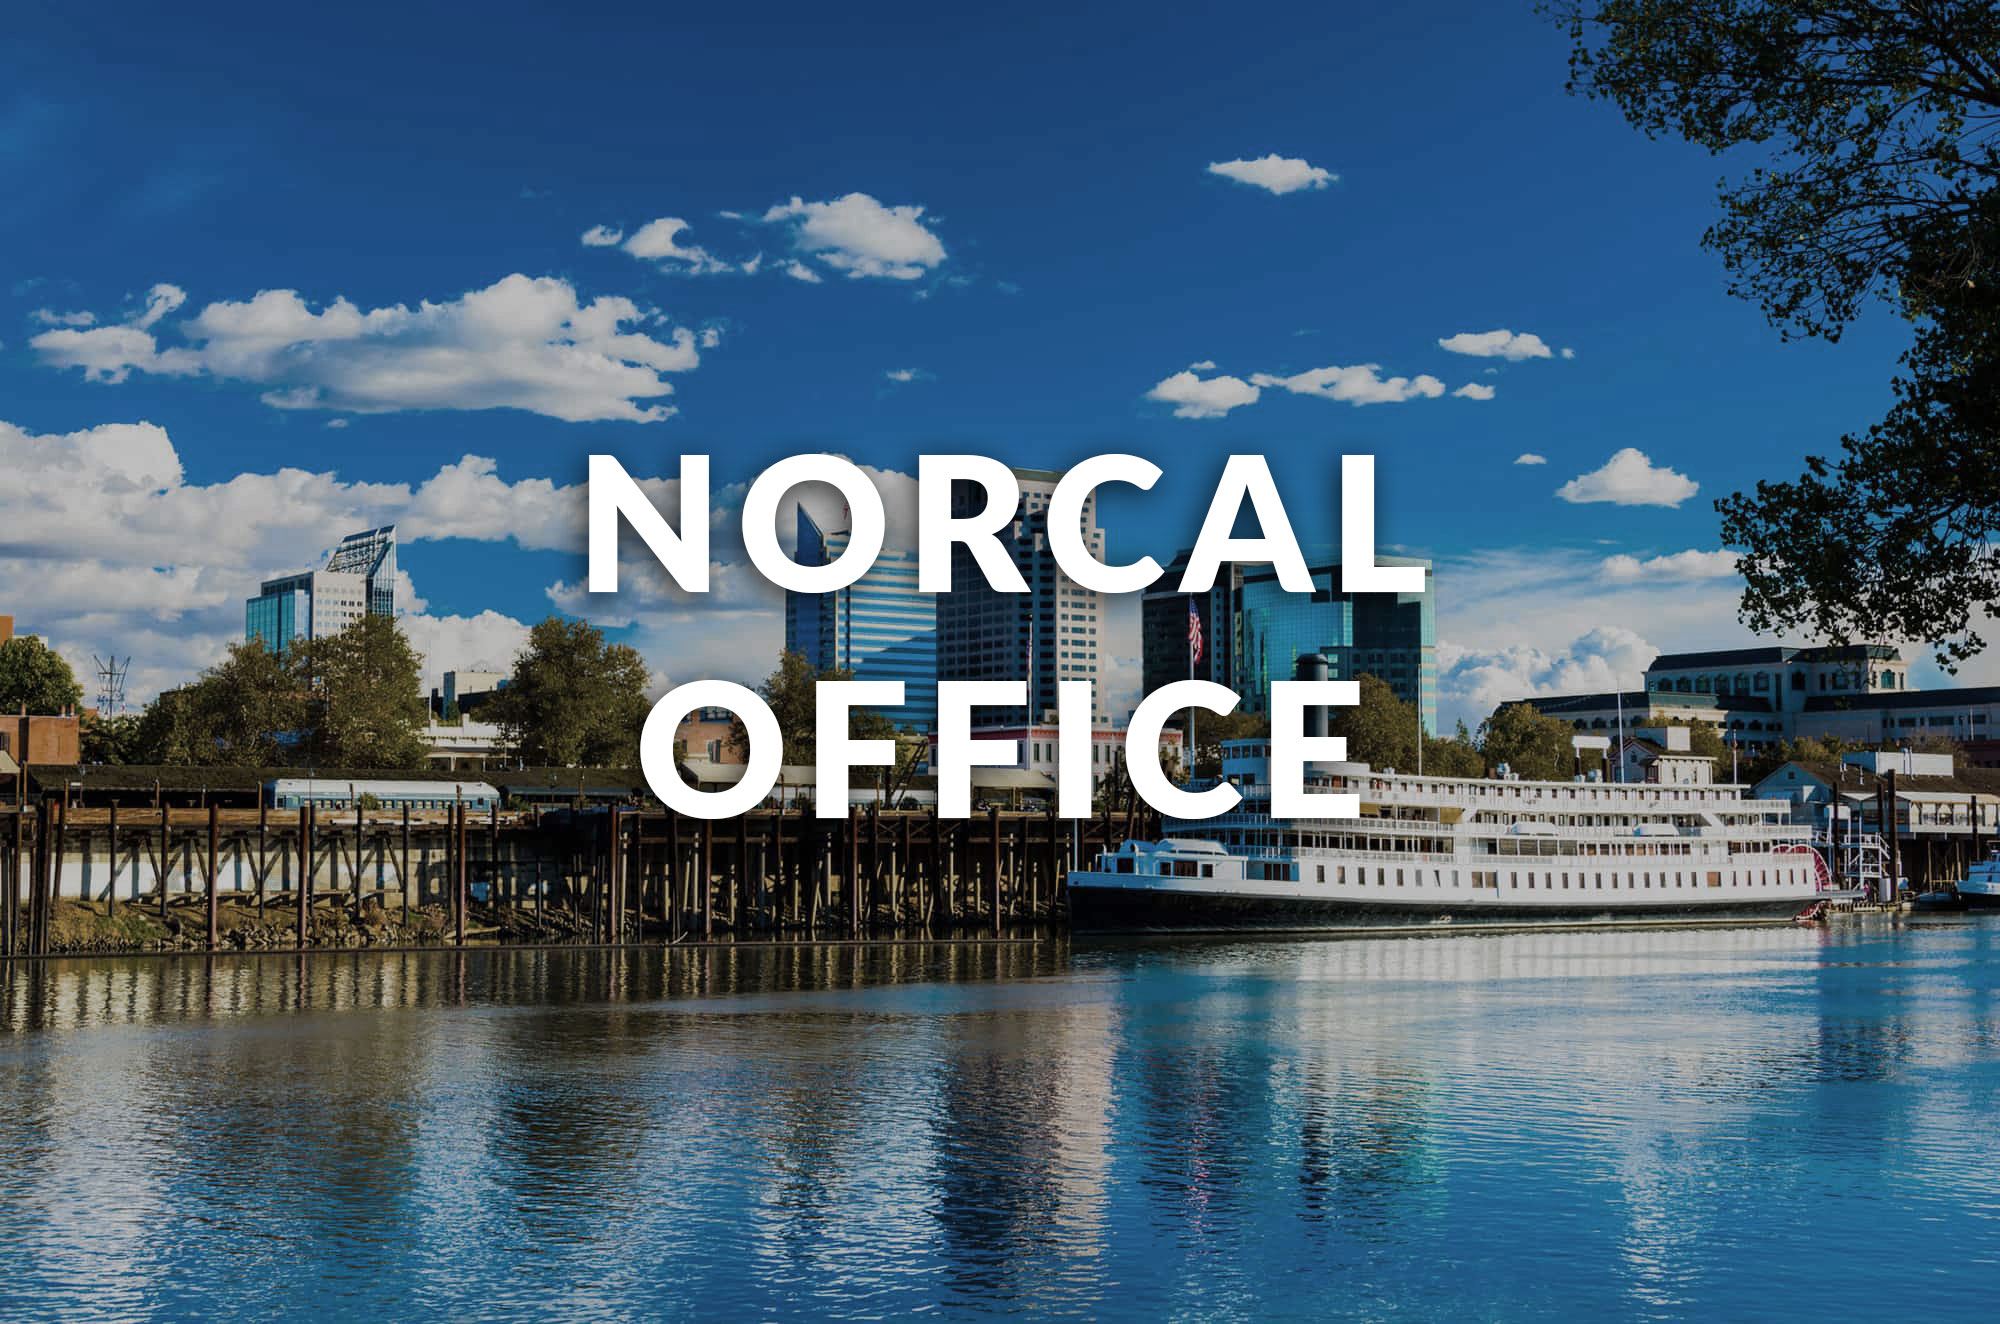 NorCal-Office-Image